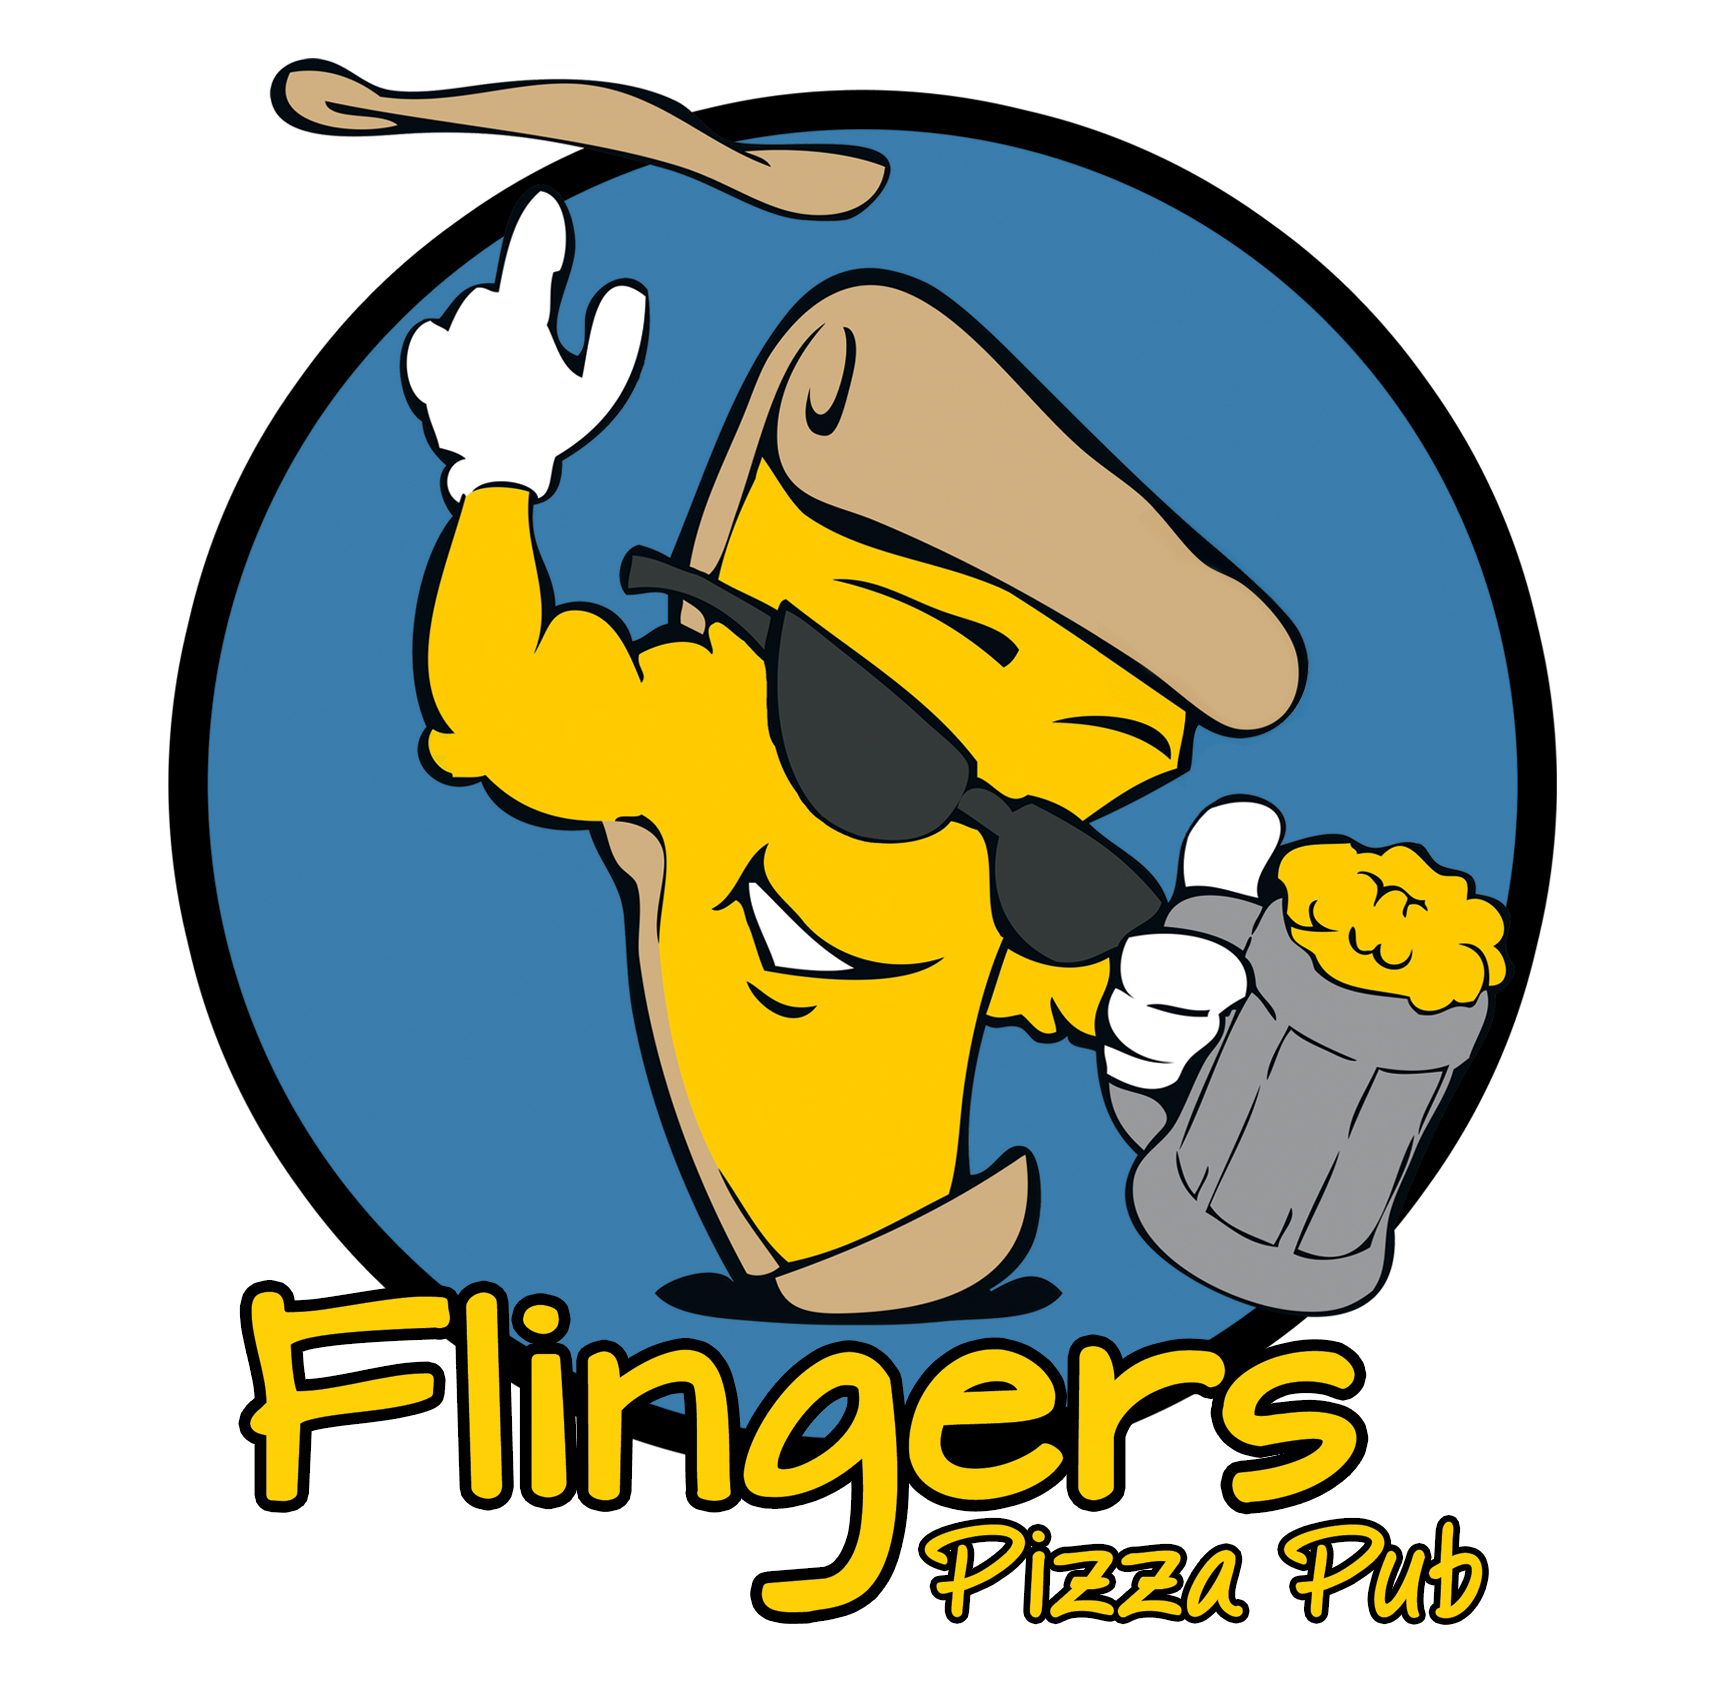 flingers pizza pub main logo